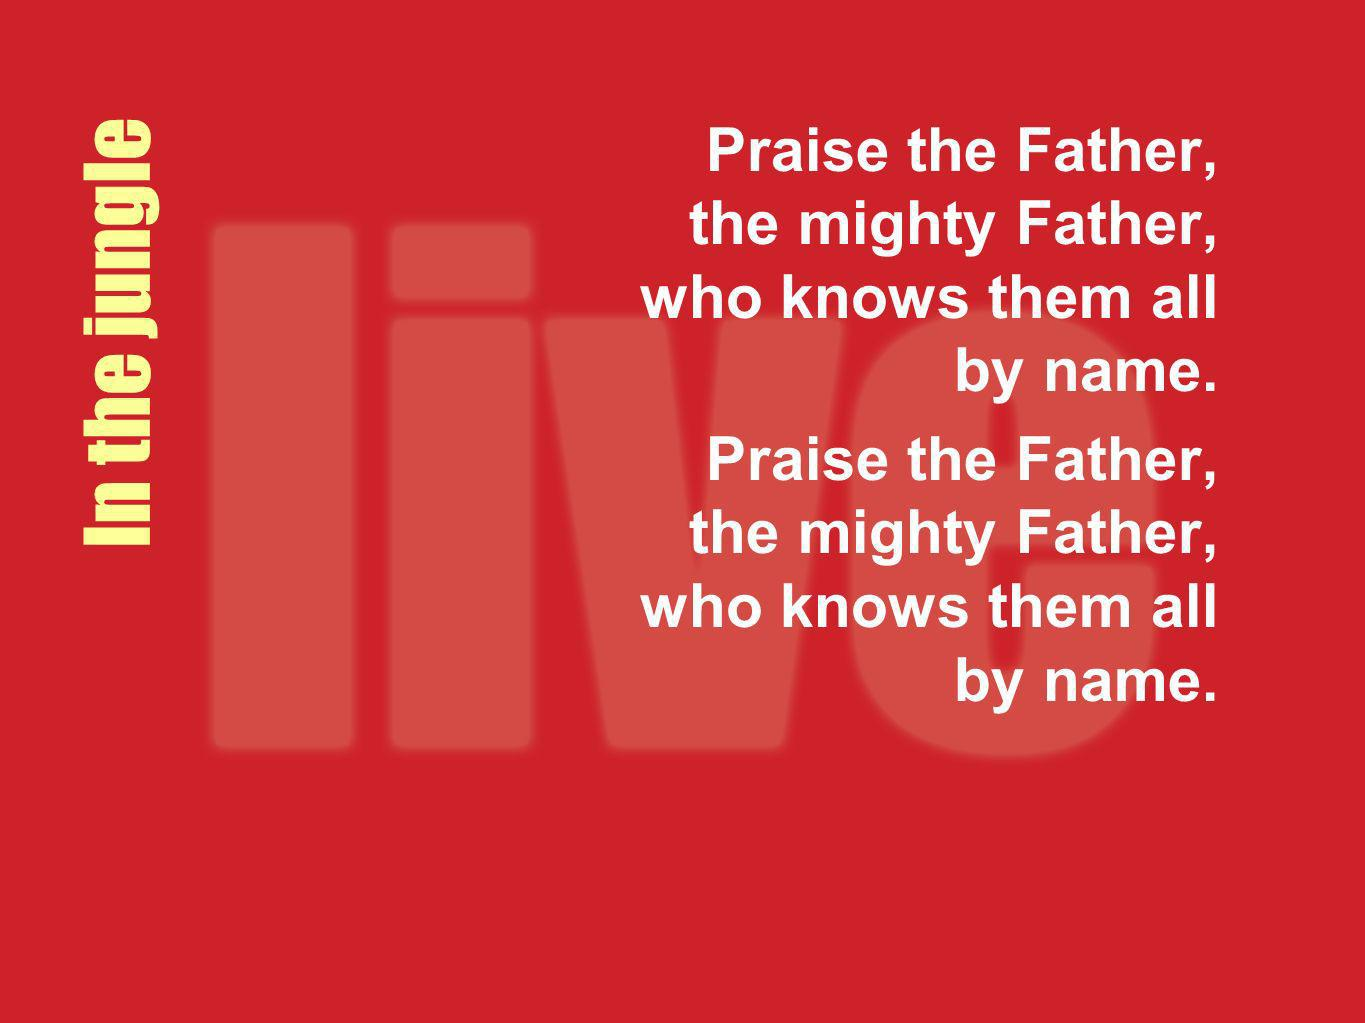 Praise the Father, the mighty Father, who knows them all by name.